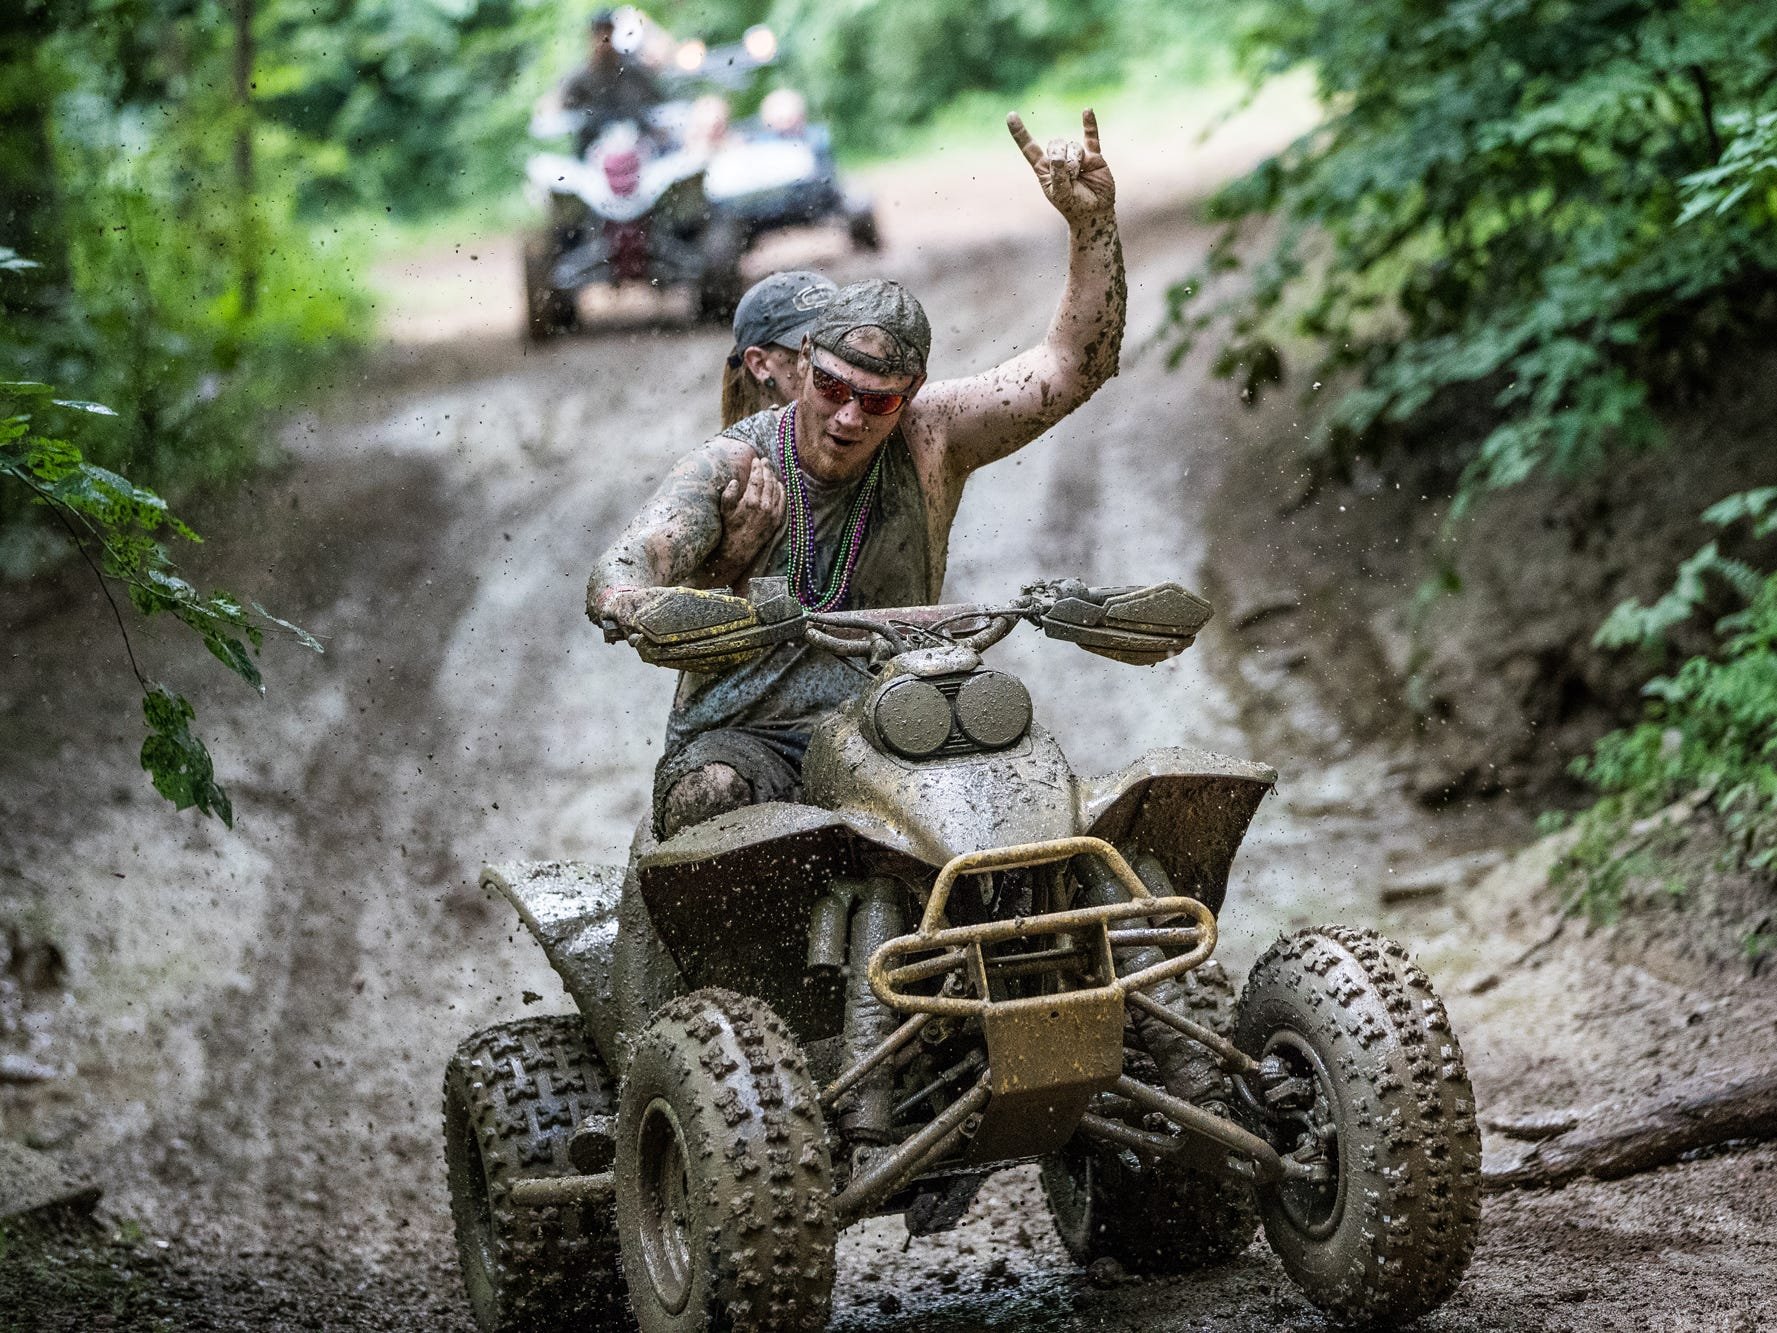 Jarrod Timberman and Paige Skirvin, of Brazil, Ind., ride through the trails of BlackSwam Mudpit in Medora, Ind., during Redneck Rave on Friday, July 20, 2018.